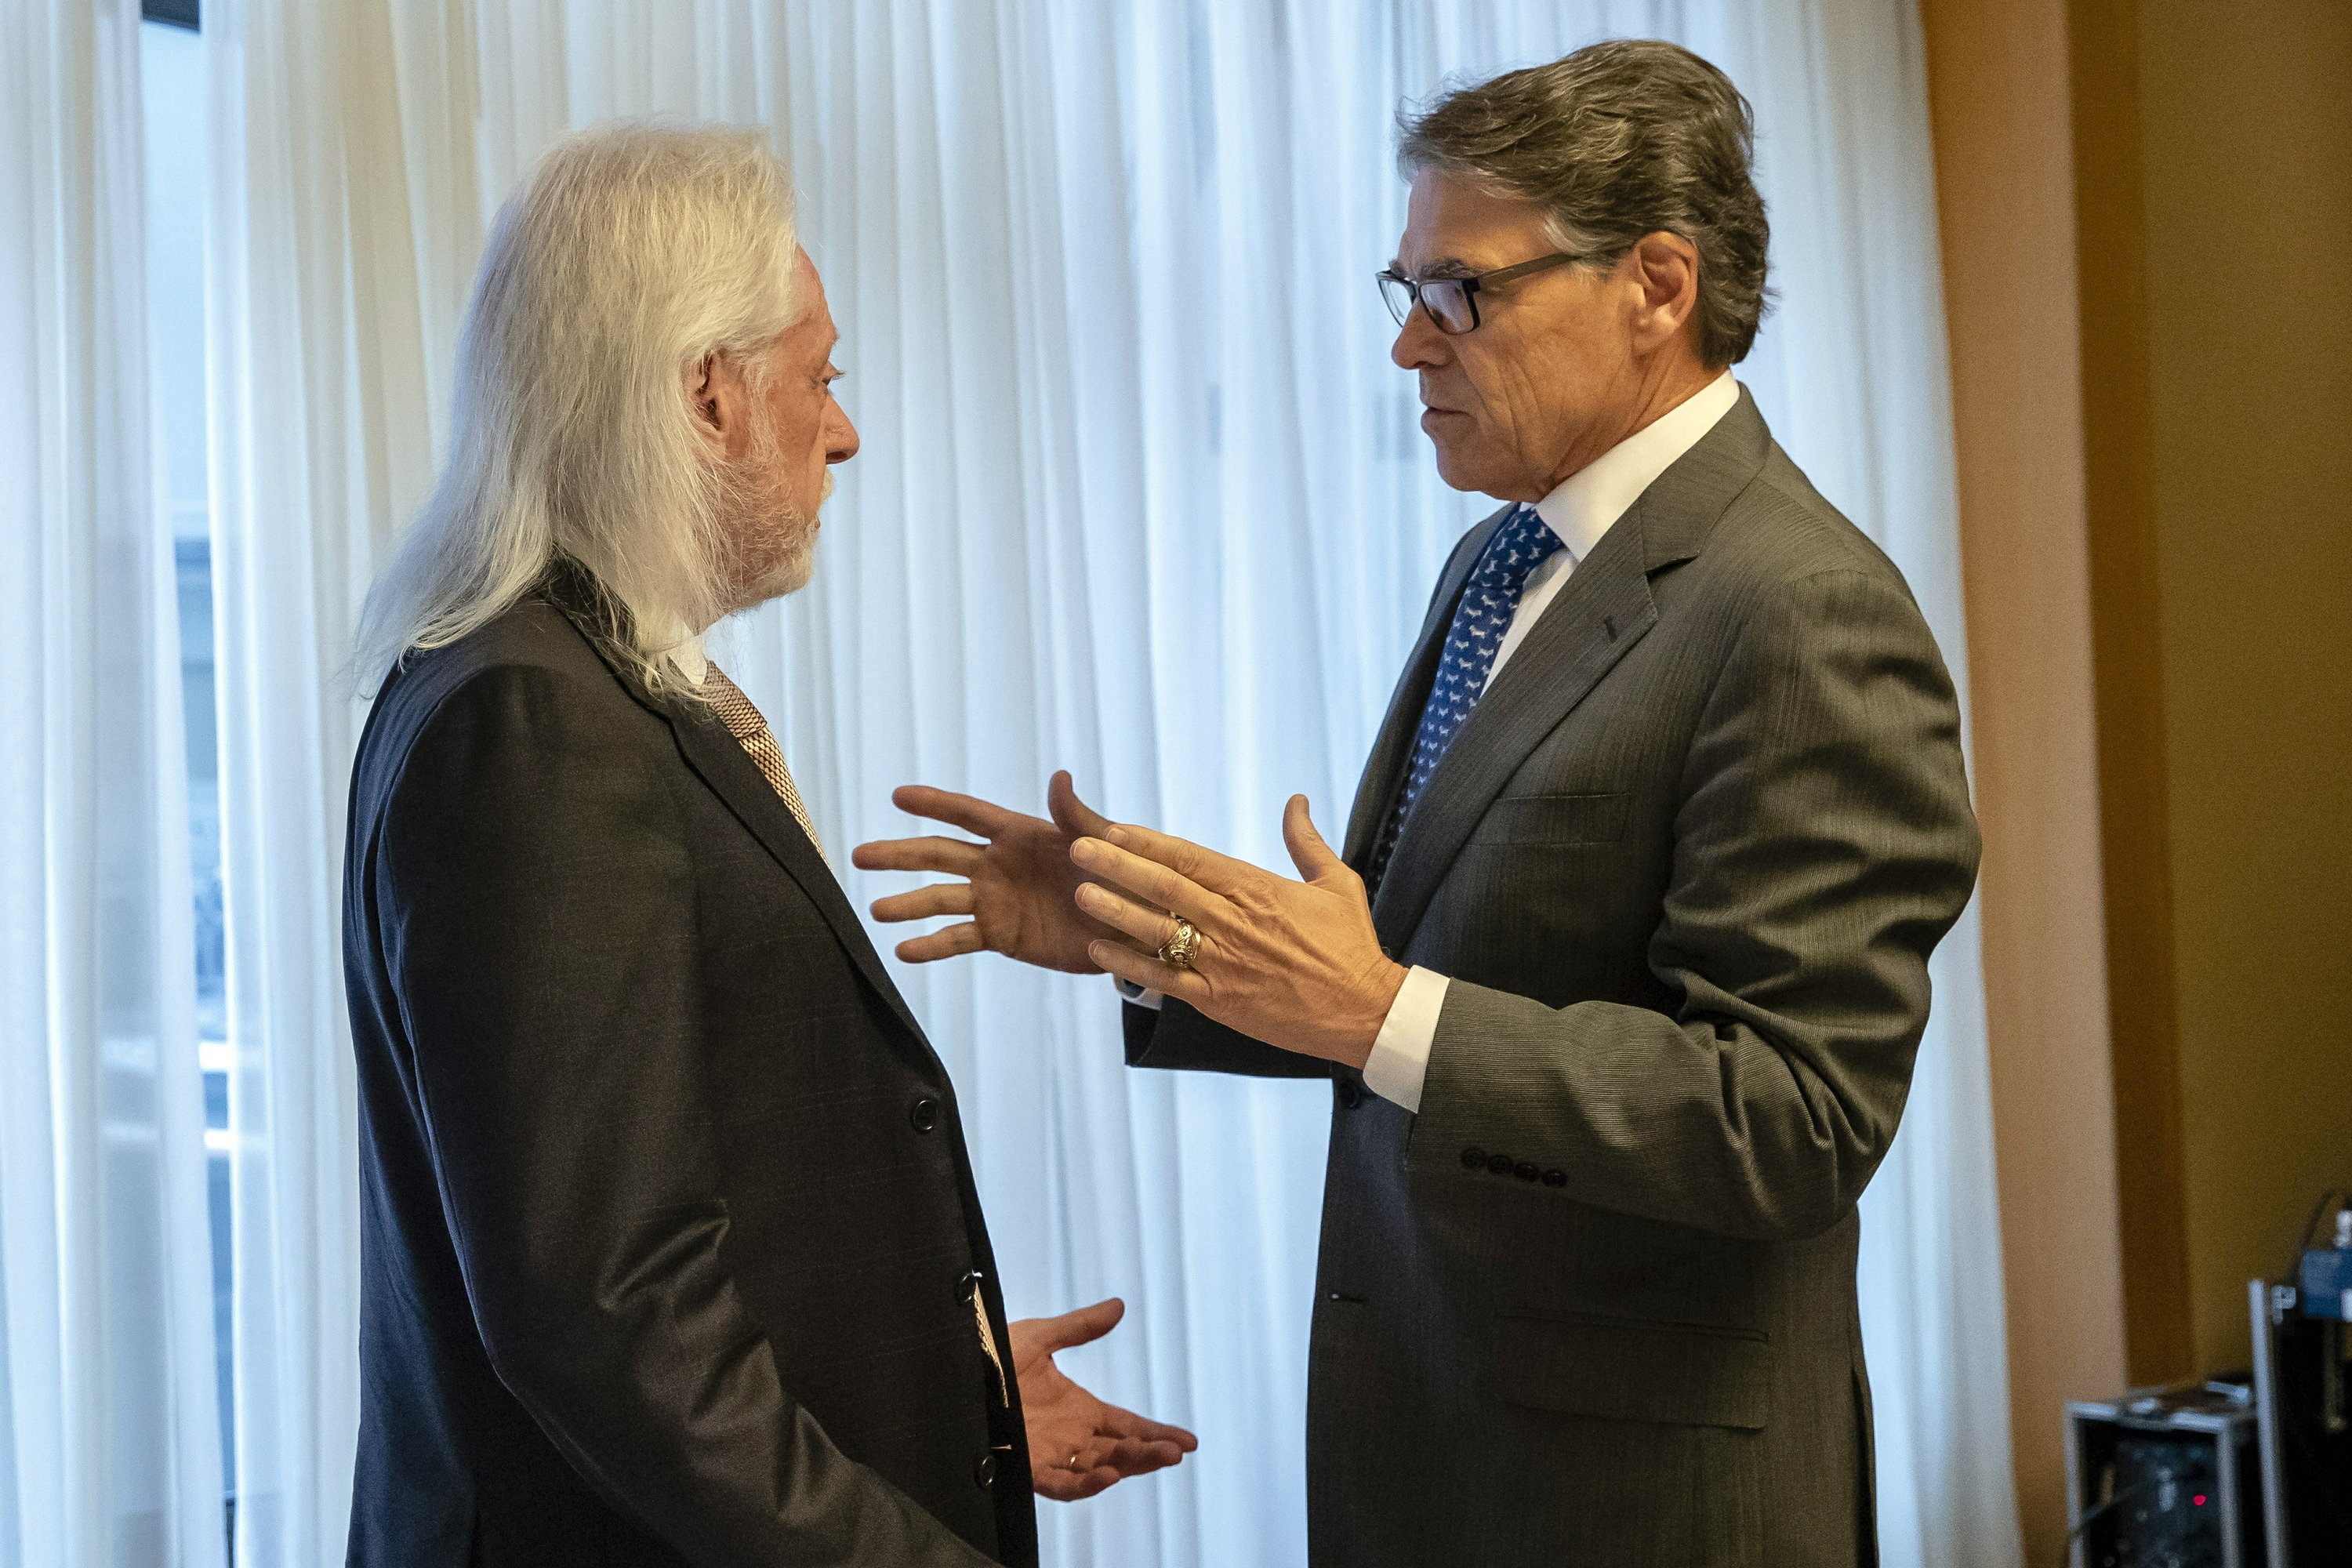 After boost from Perry, backers got huge gas deal in Ukraine